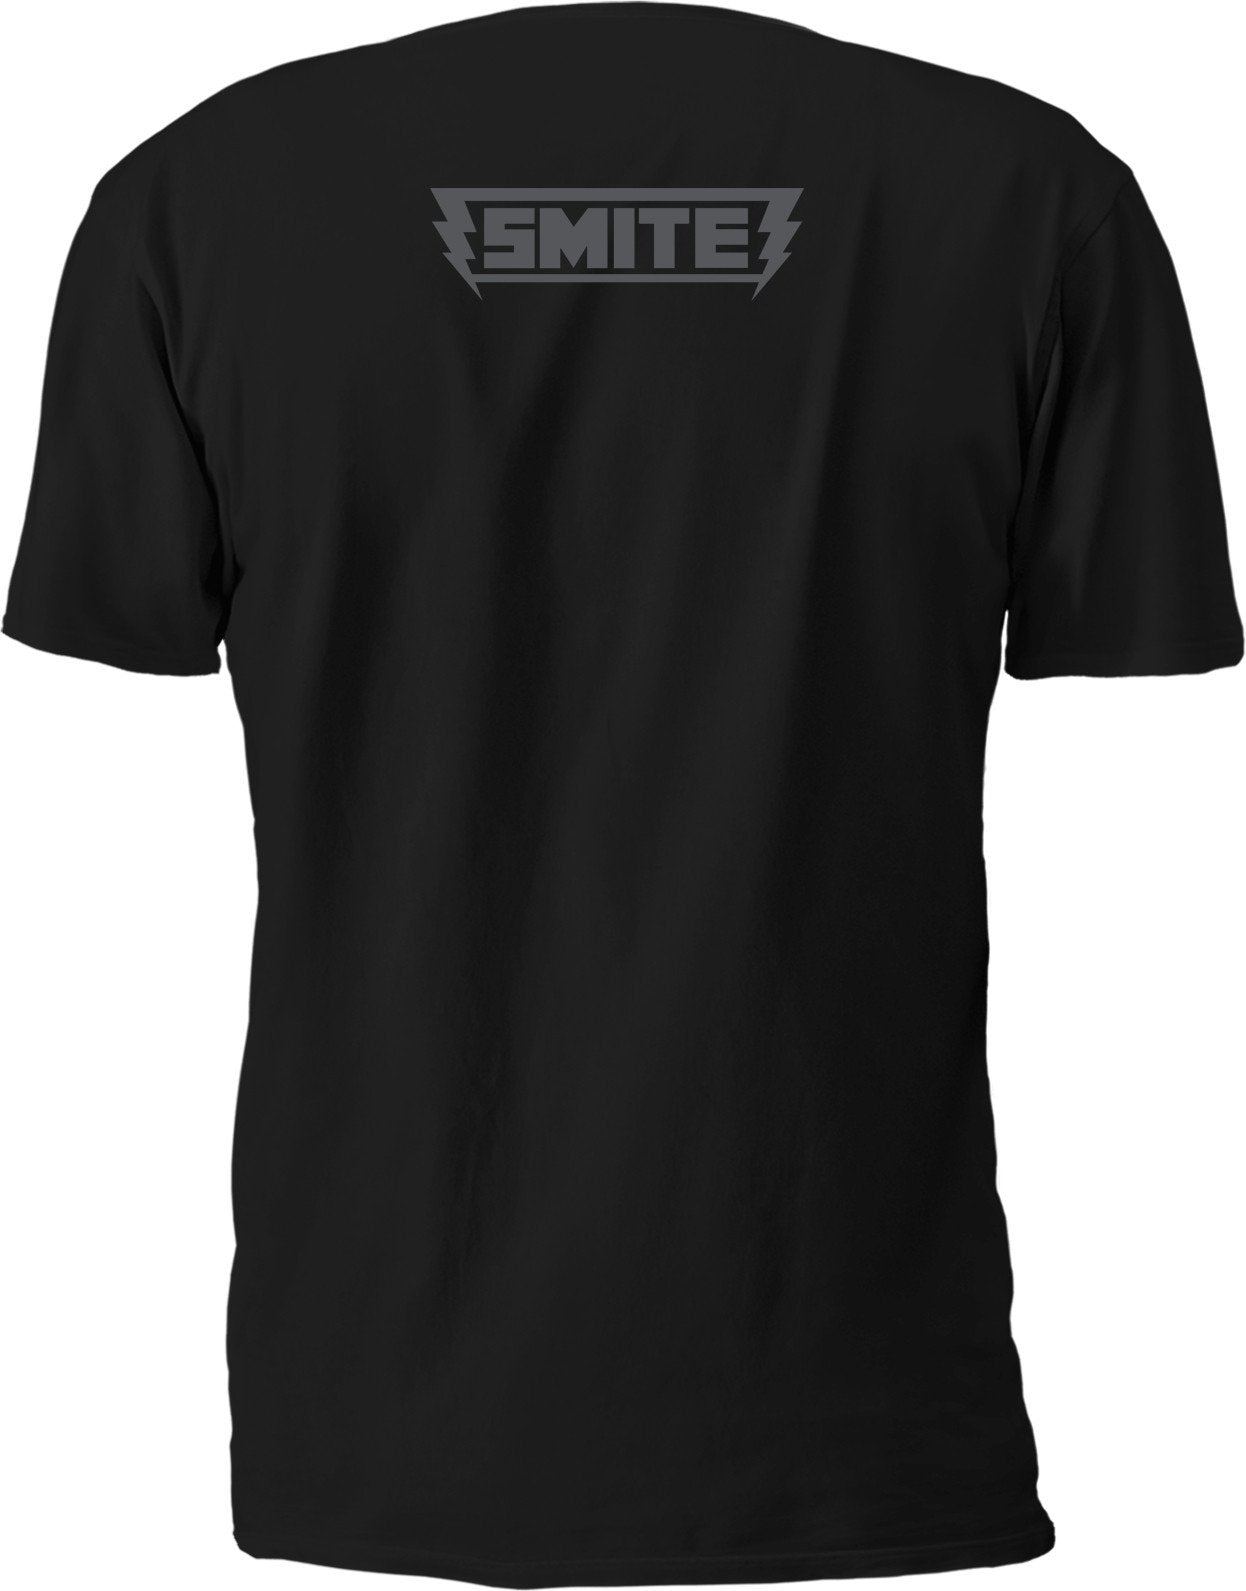 Smite Greek Pantheon T-shirt